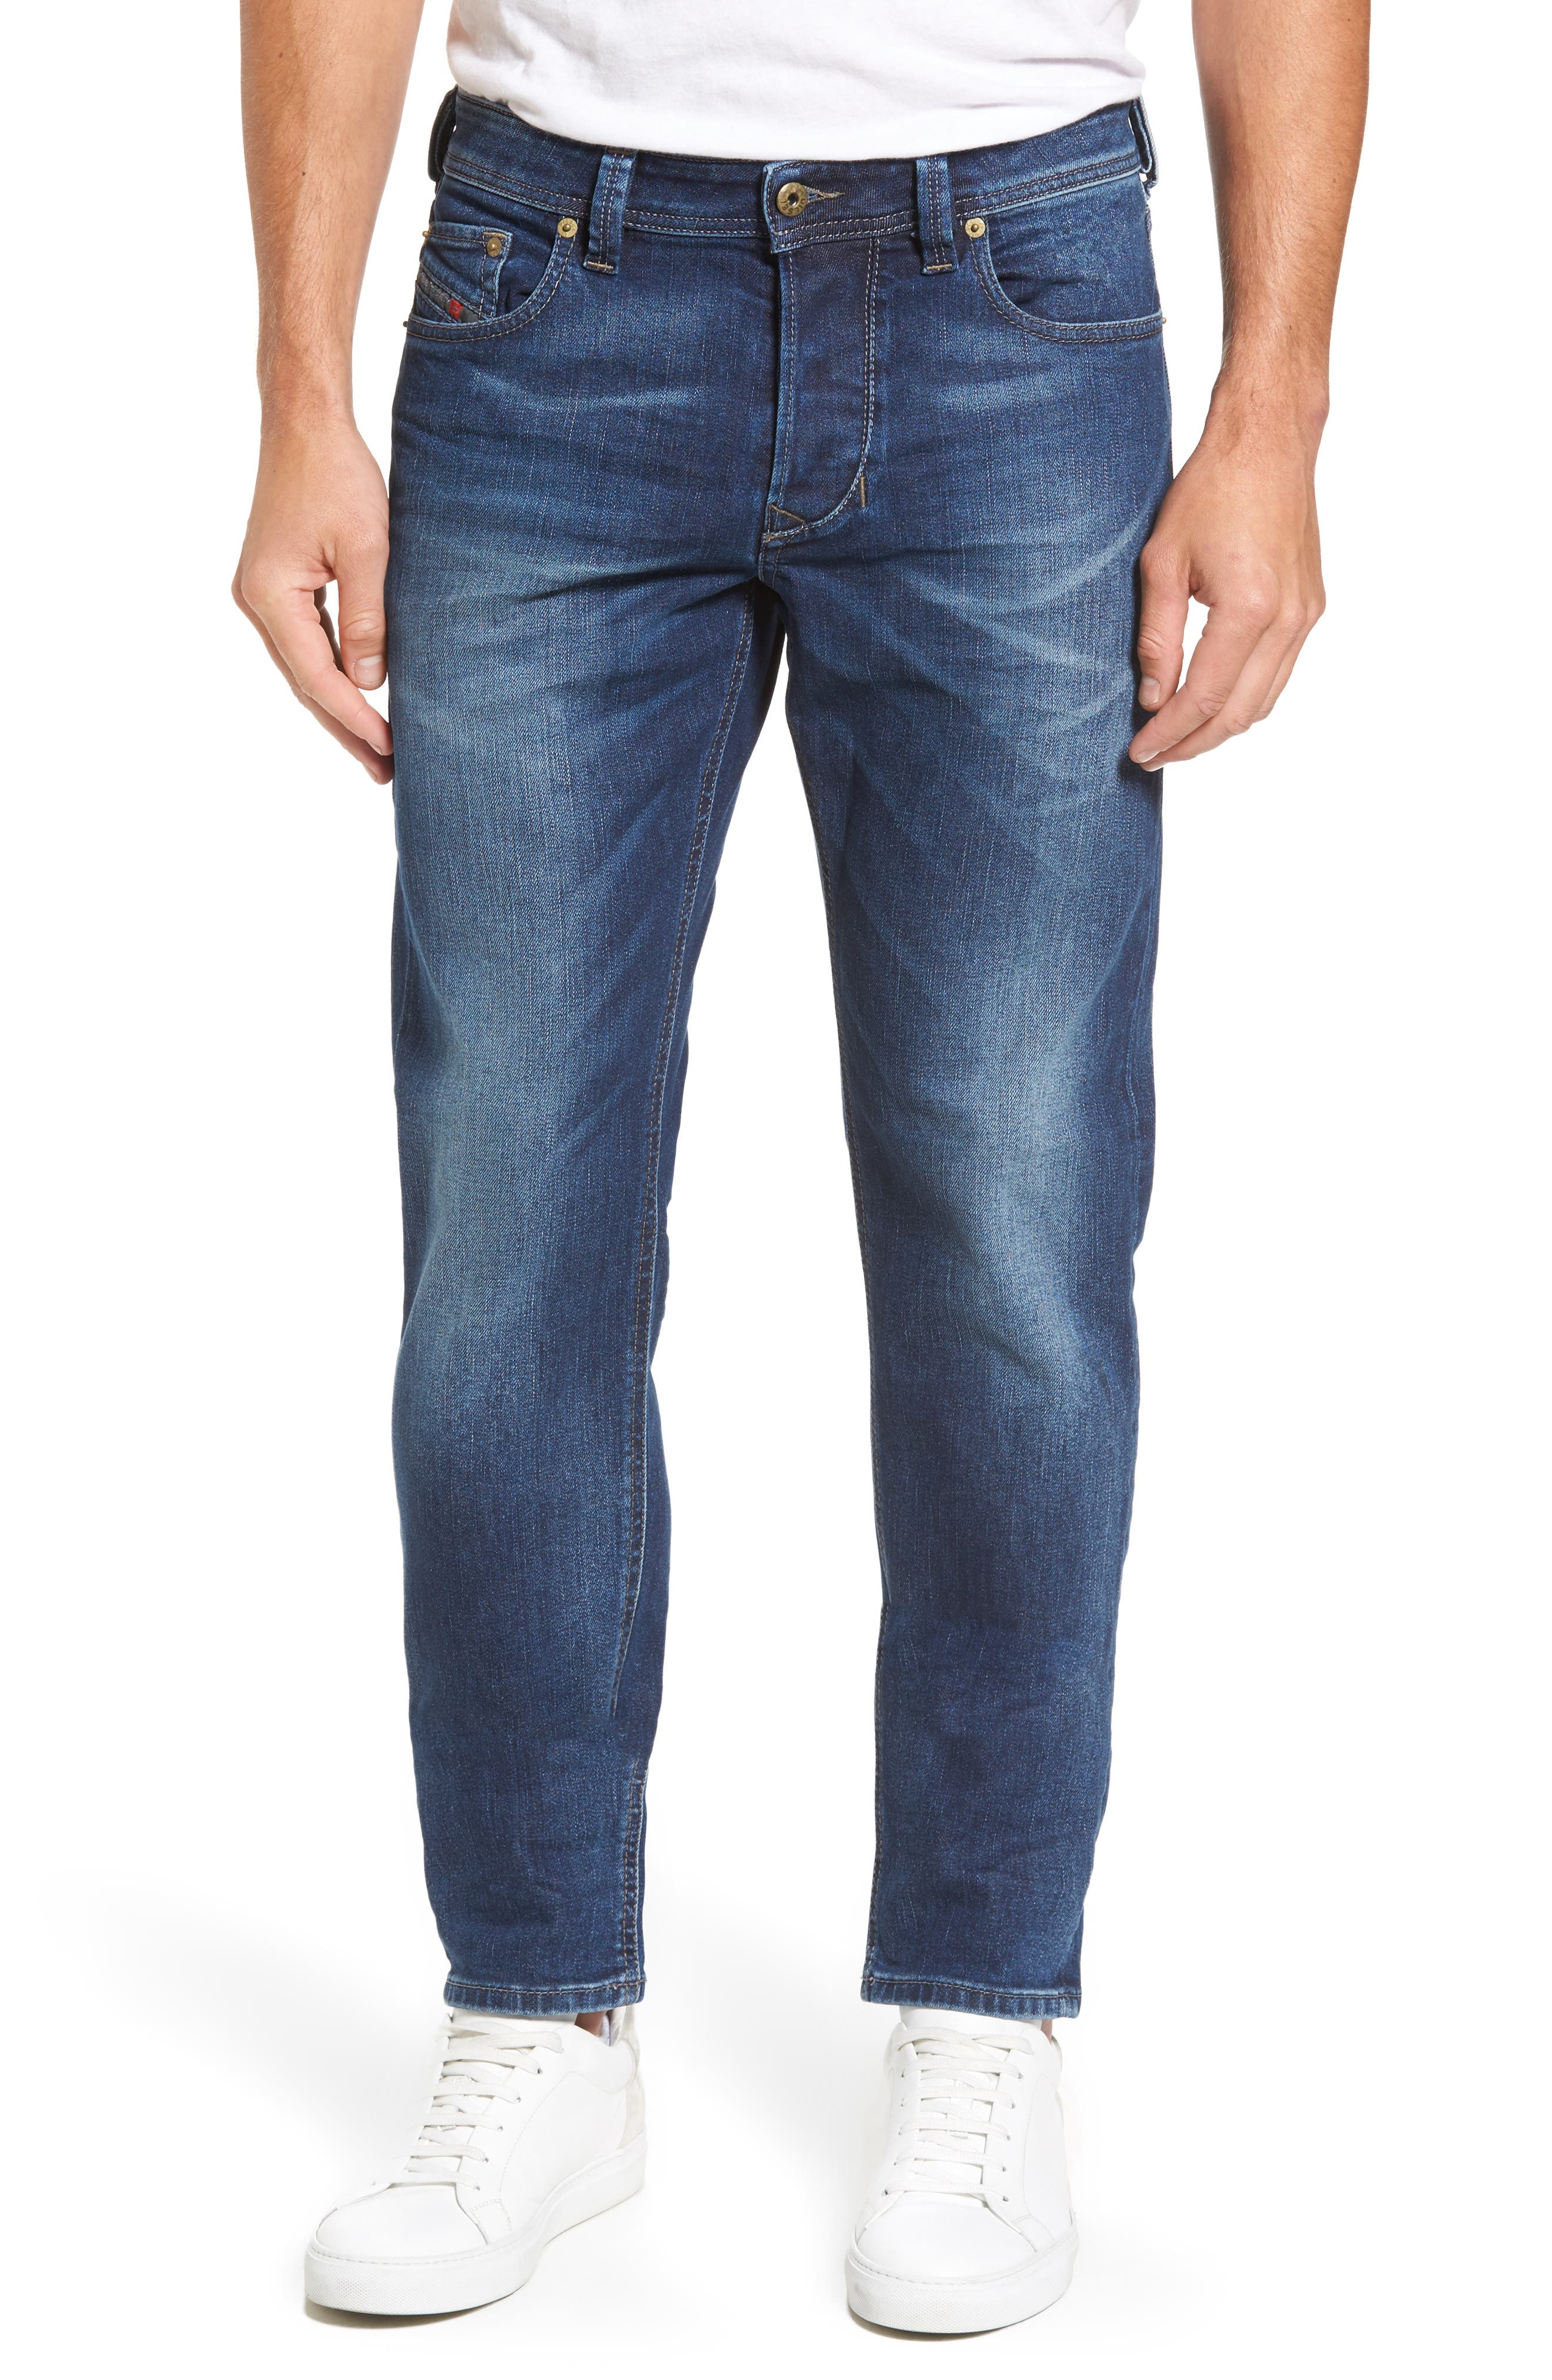 Larkee-Beex Relaxed Fit Jeans,                         Main,                         color, Denim